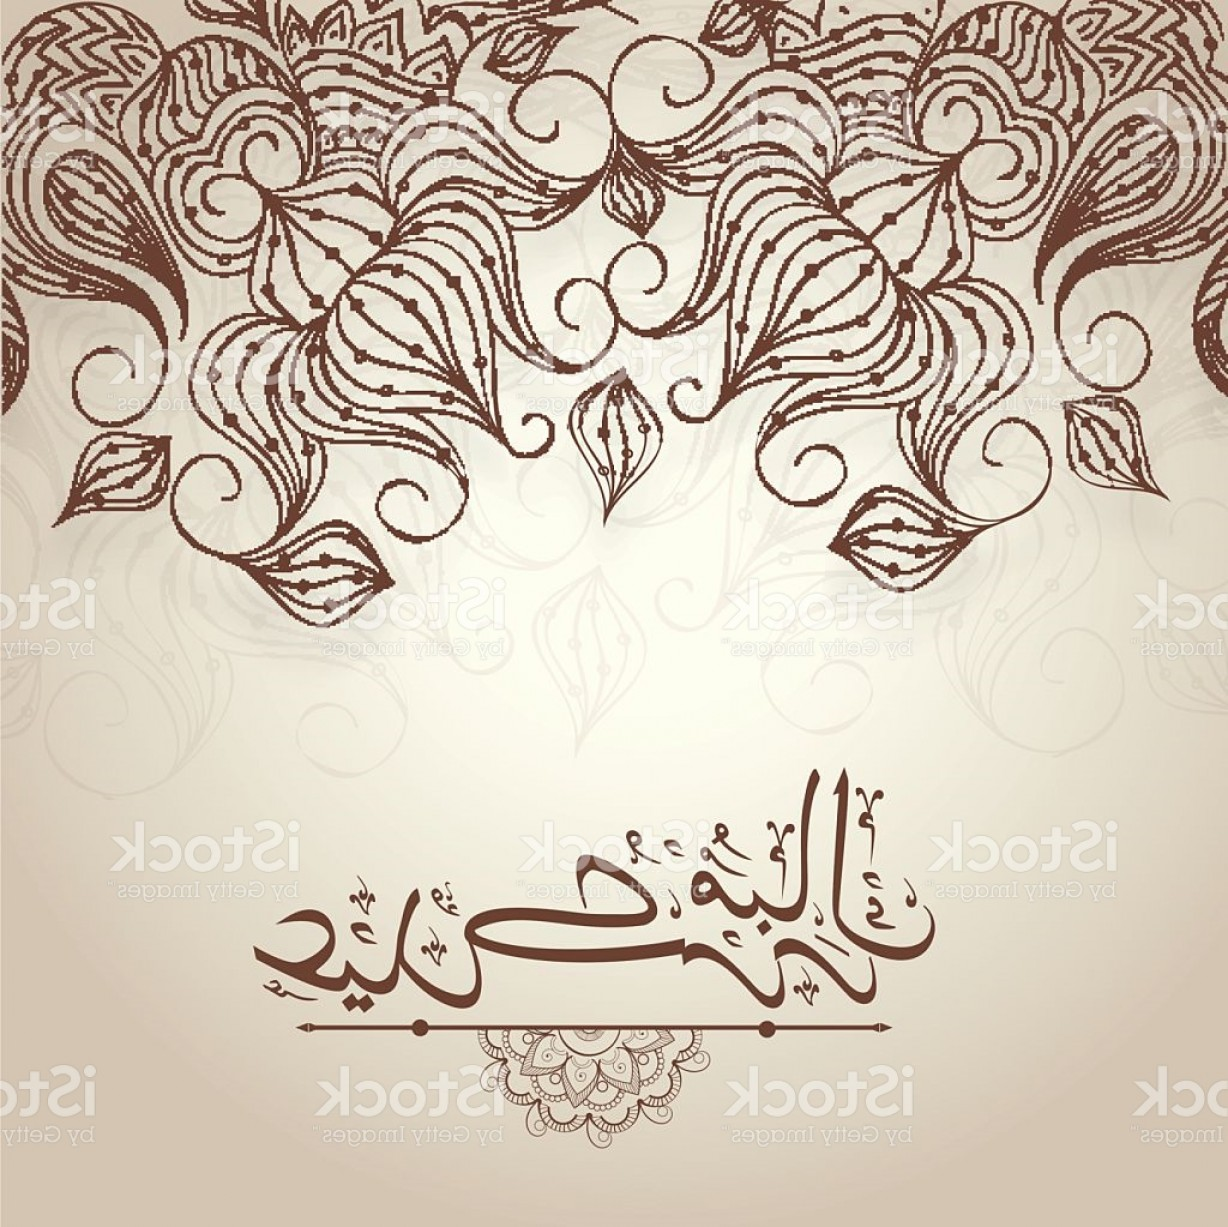 Floral Vector Calligraphy: Islamic Calligraphy Of Text Eid Mubarak On Floral Decorated Background Gm